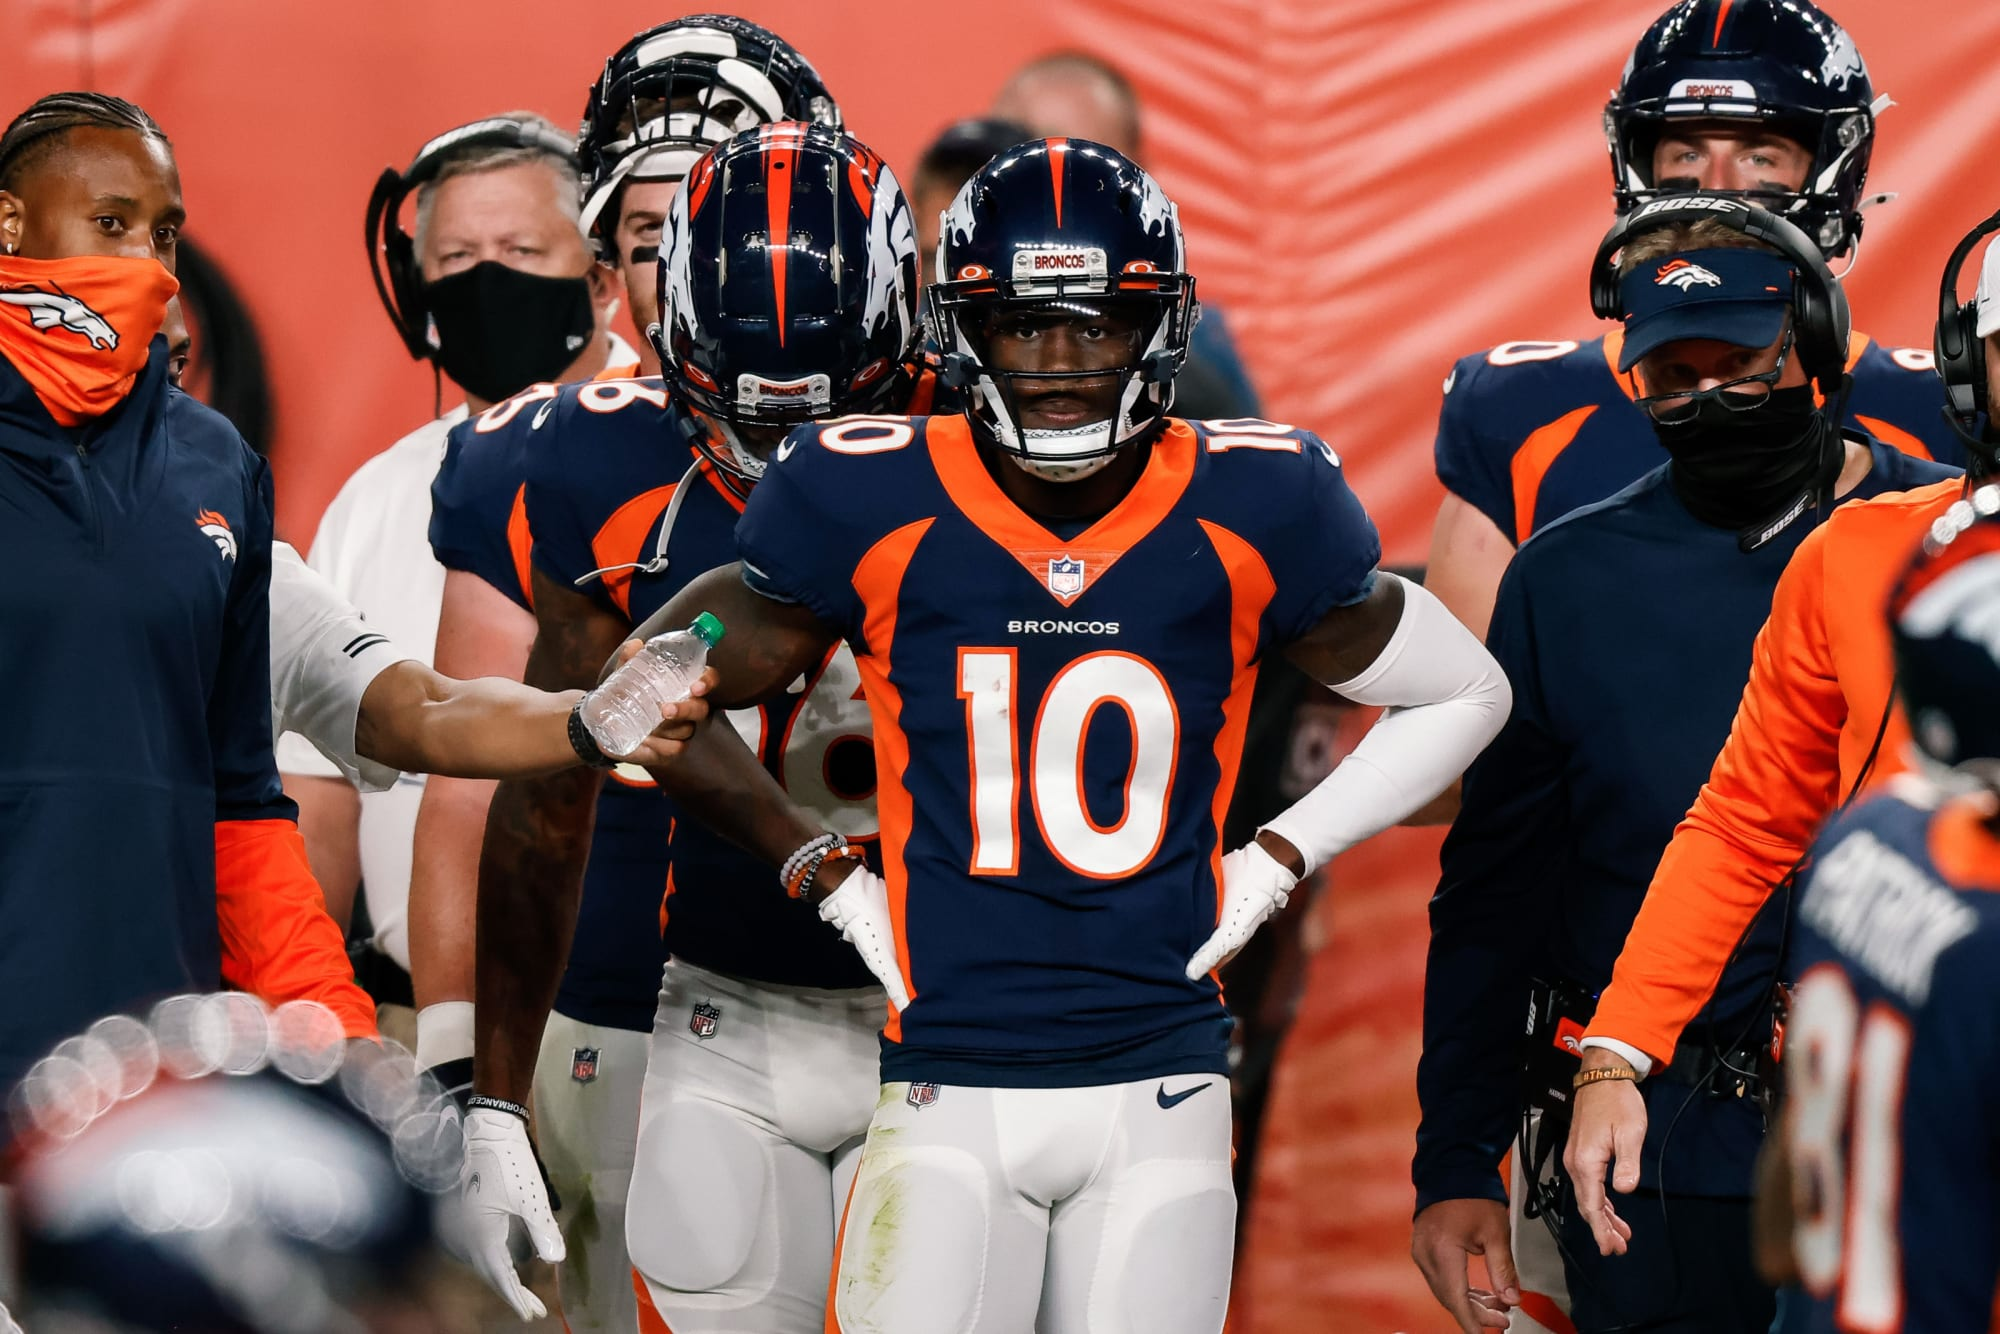 Denver Broncos players complain about having to play without a QB